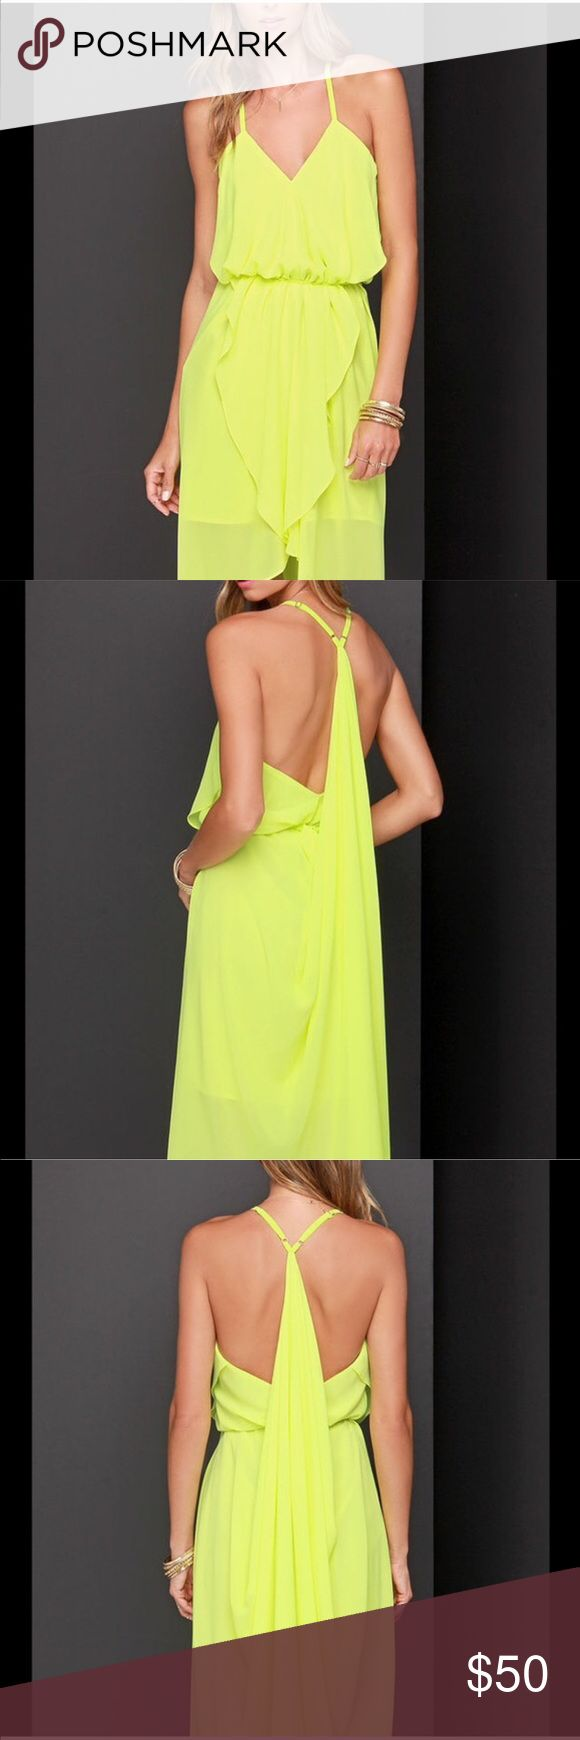 Chartreuse Dress Only worn once. Great color! Lulu's Dresses Midi